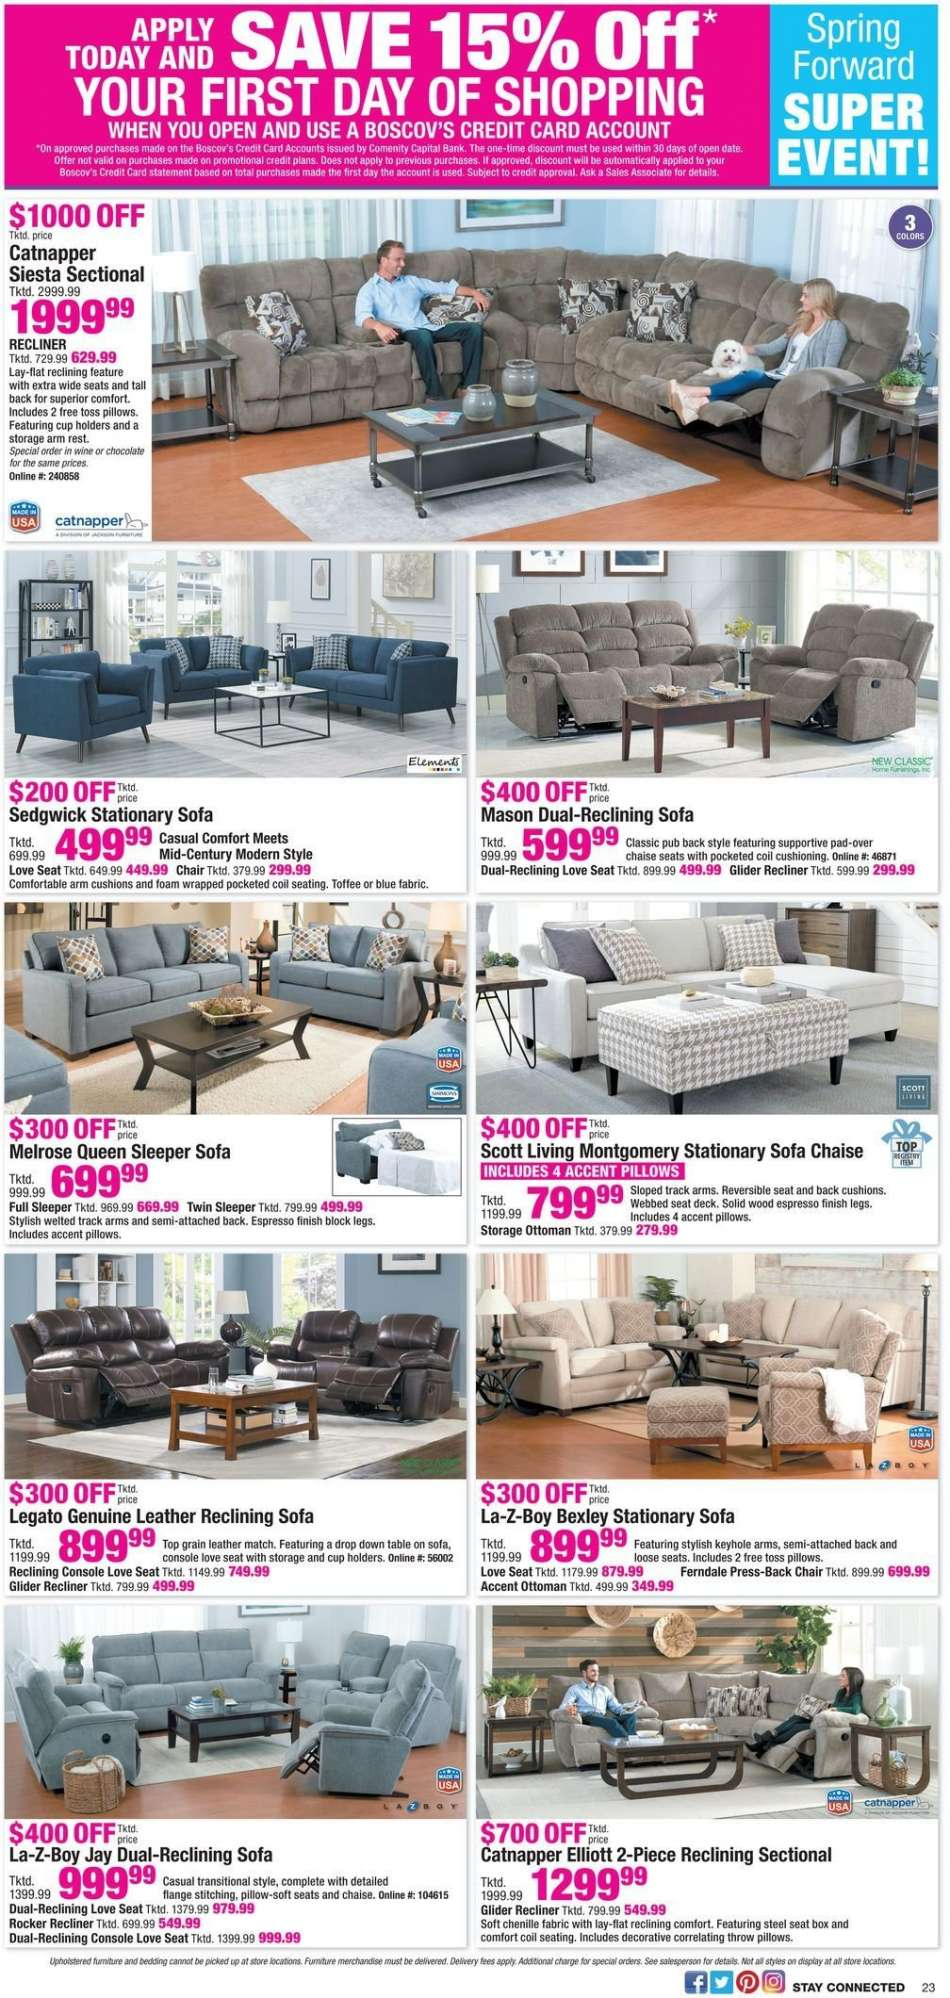 Tremendous Boscovs Flyer 03 03 2019 03 10 2019 Weekly Ads Us Gmtry Best Dining Table And Chair Ideas Images Gmtryco